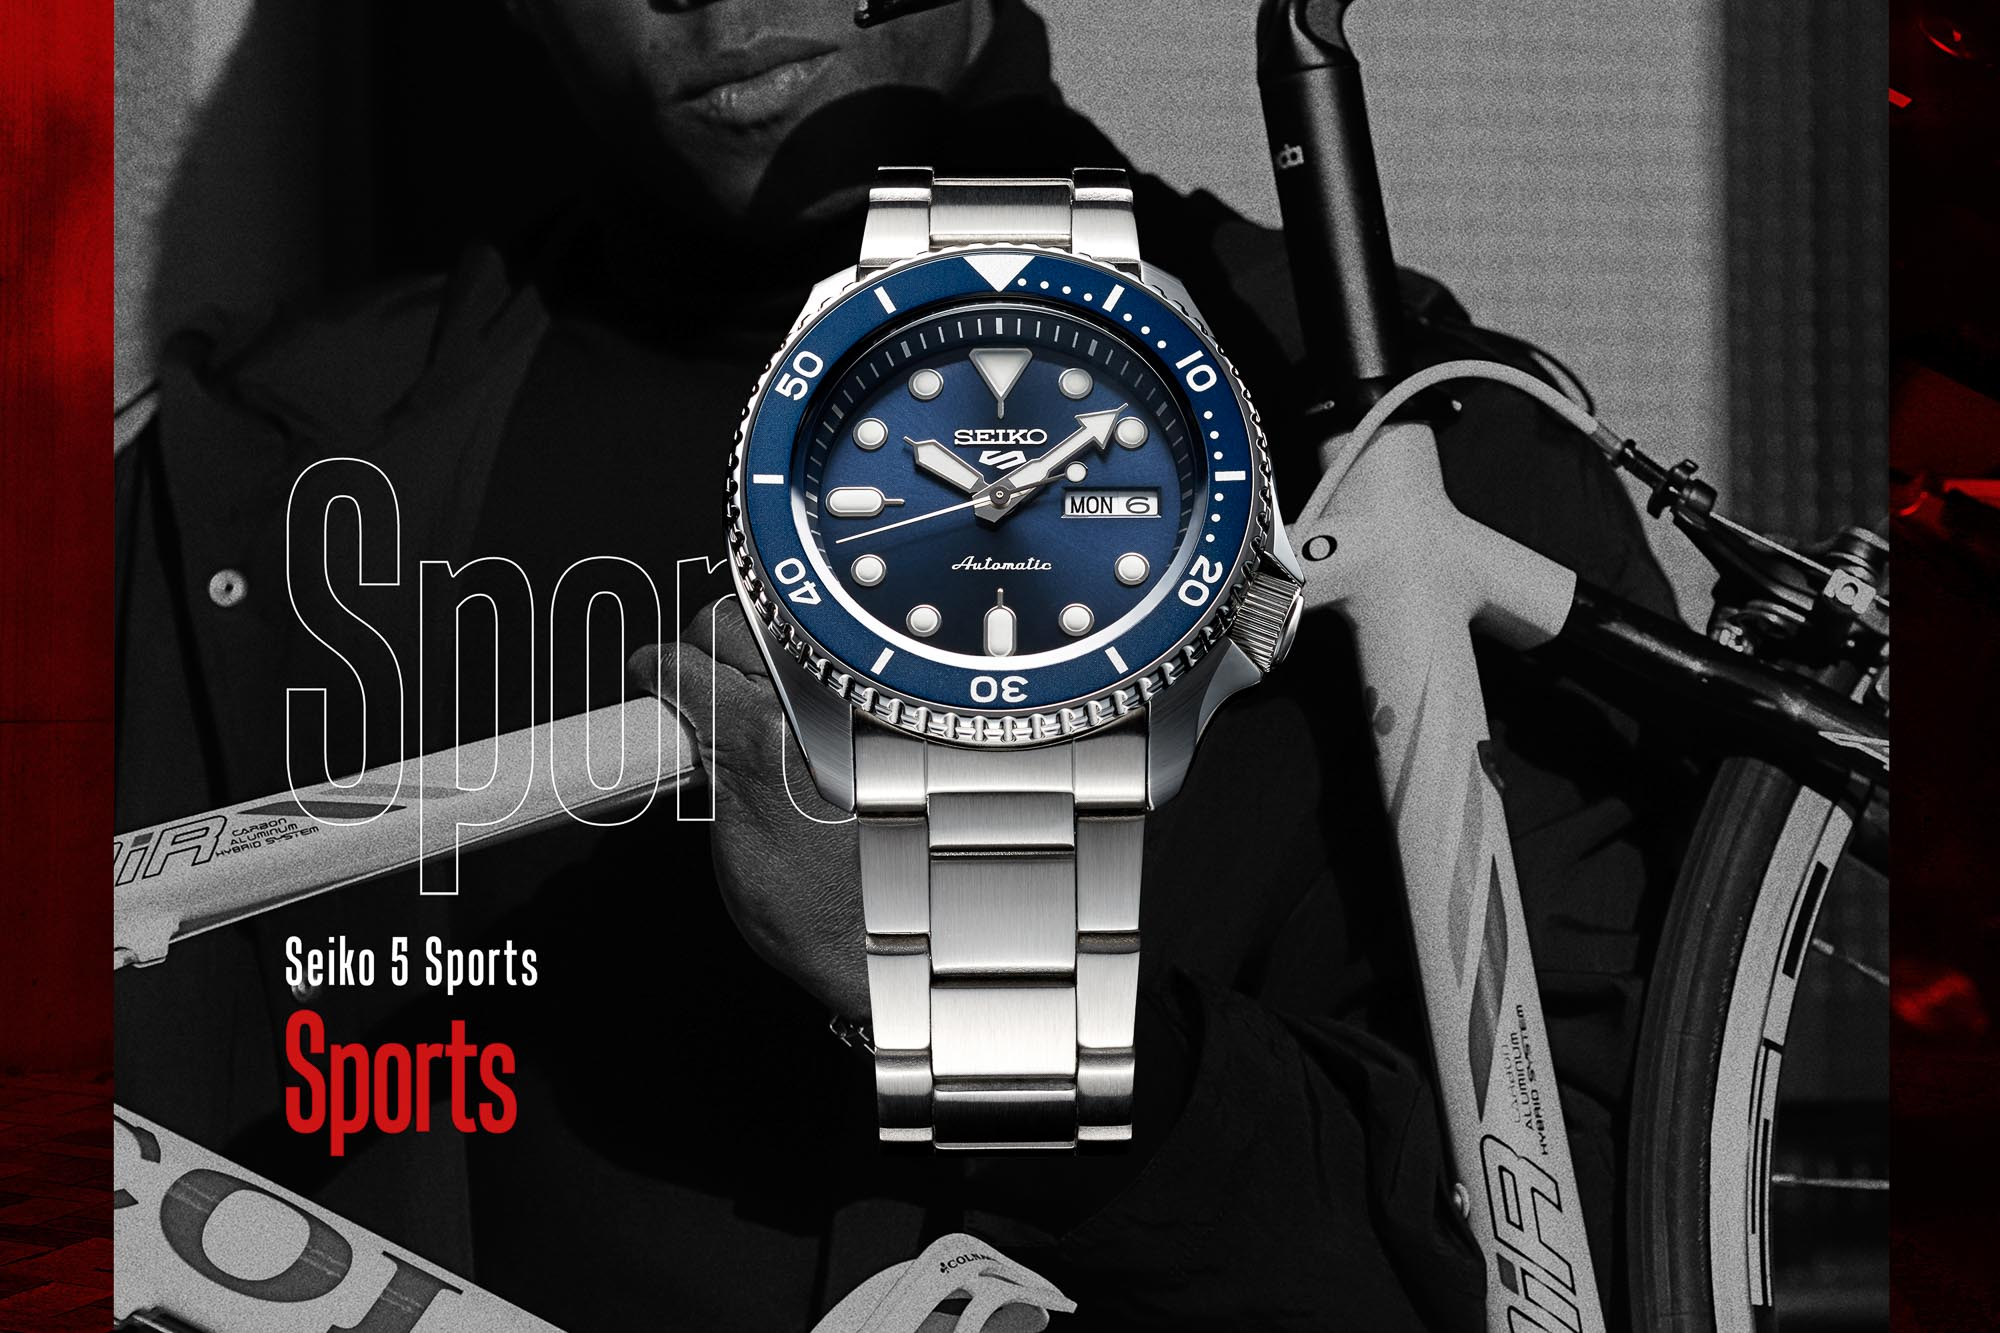 Hot Take Seiko 5 Sports Collection Our Thoughts On The